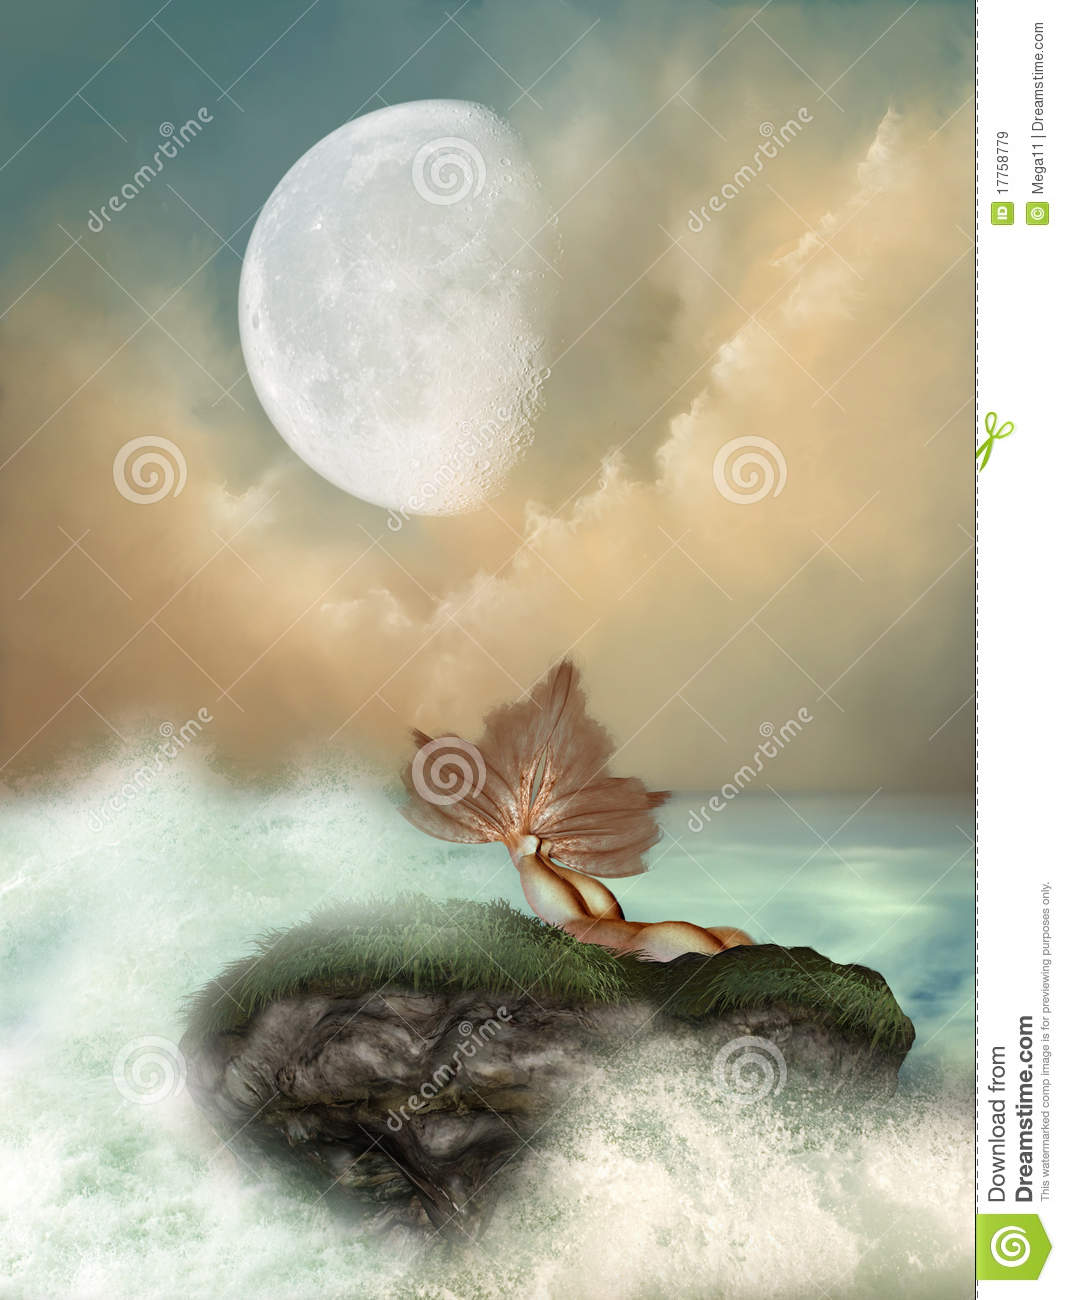 royalty free mermaids images google